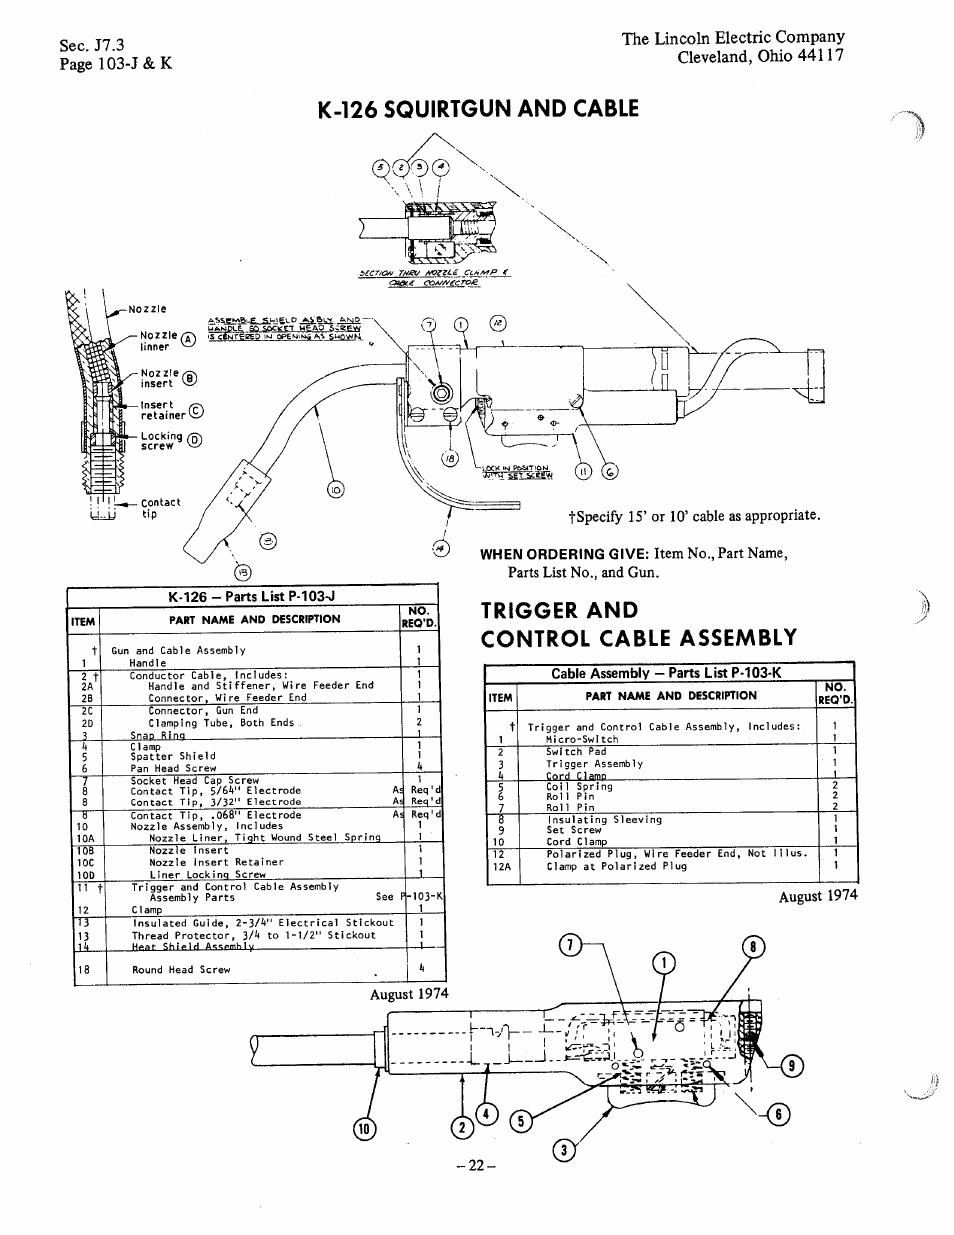 medium resolution of k 126 squirtgun and cable trigger and control cable assembly lincoln ln 7 user manual page 22 28